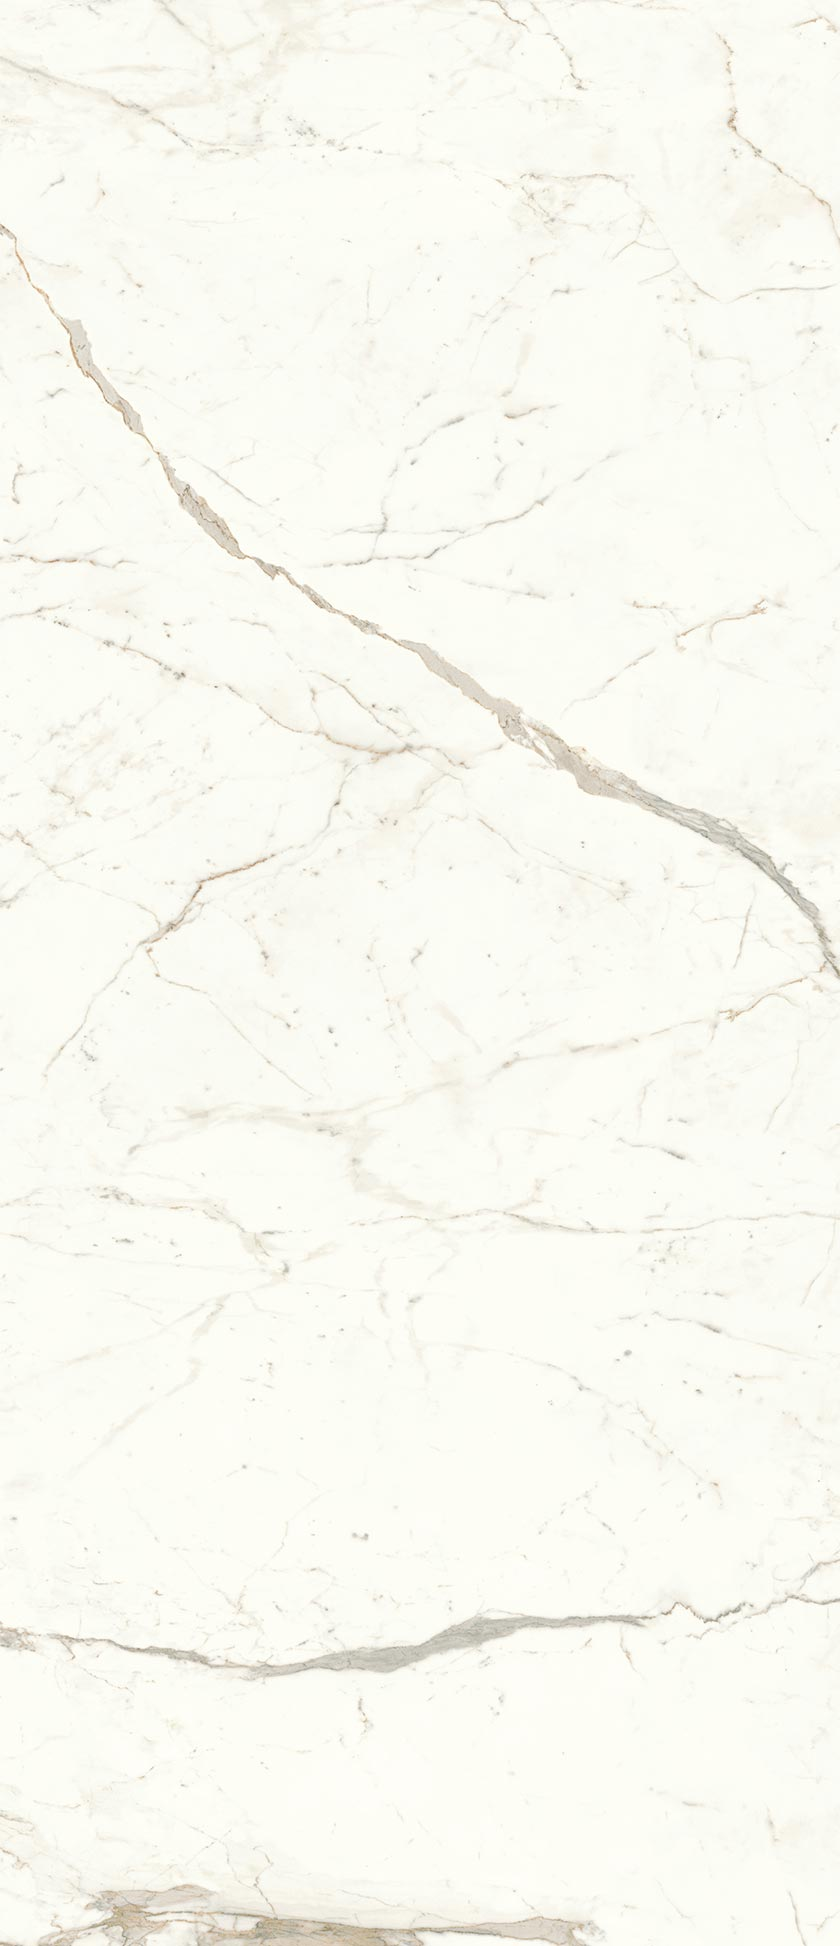 120x278-4-atlas-plan-calacatta-prestigio-book-match-surfaces